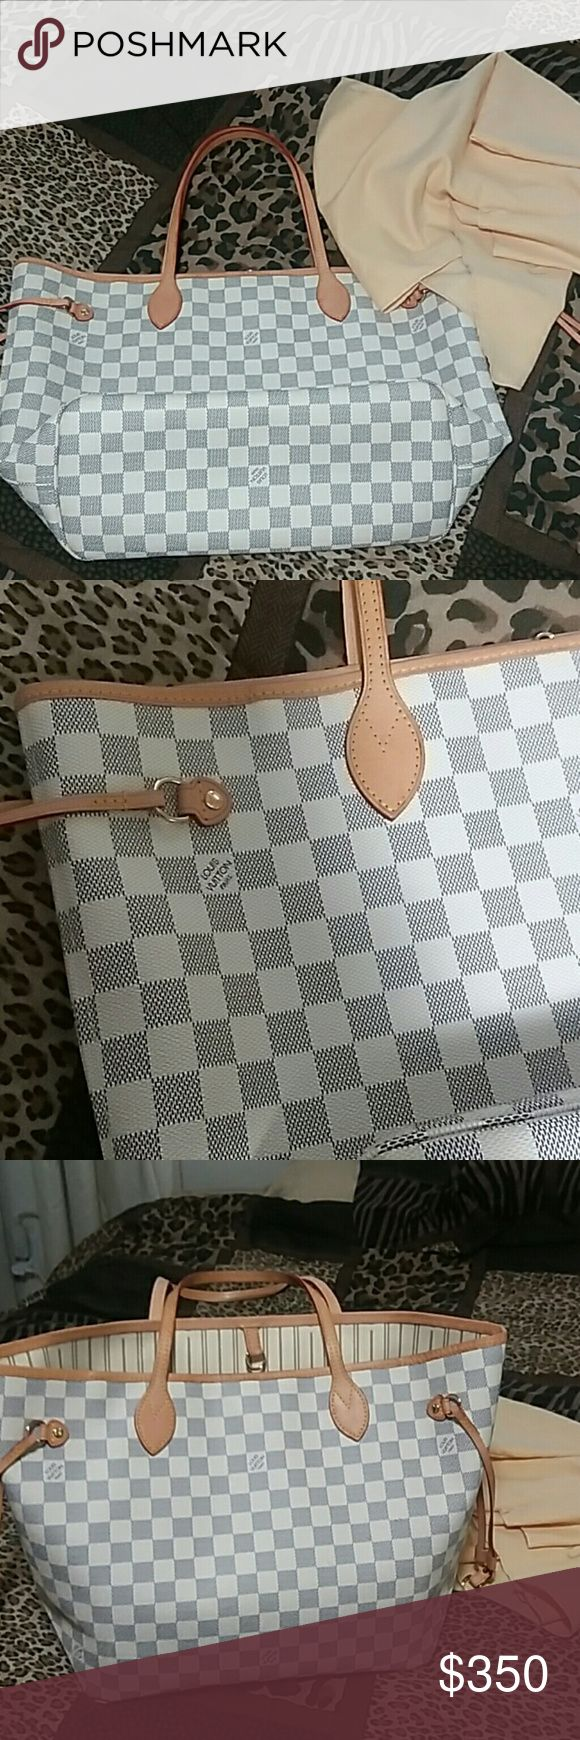 Checkered bag Great quality you will never missed.neverful MM size clean  smoke free home.leather and has datecode (Not Auth) Louis Vuitton Bags Shoulder Bags